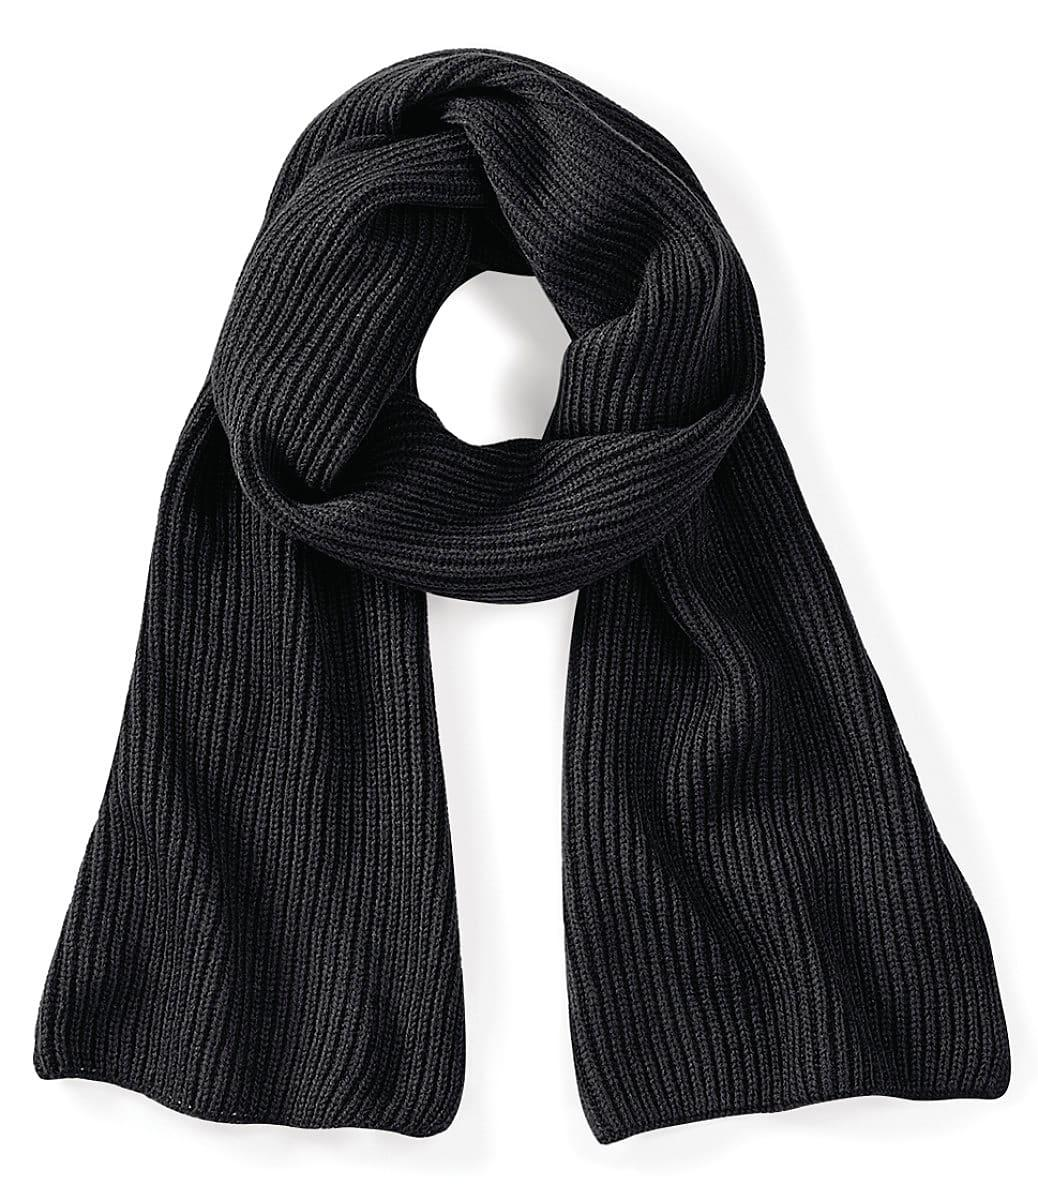 Beechfield Metro Knitted Scarf in Black (Product Code: B469)